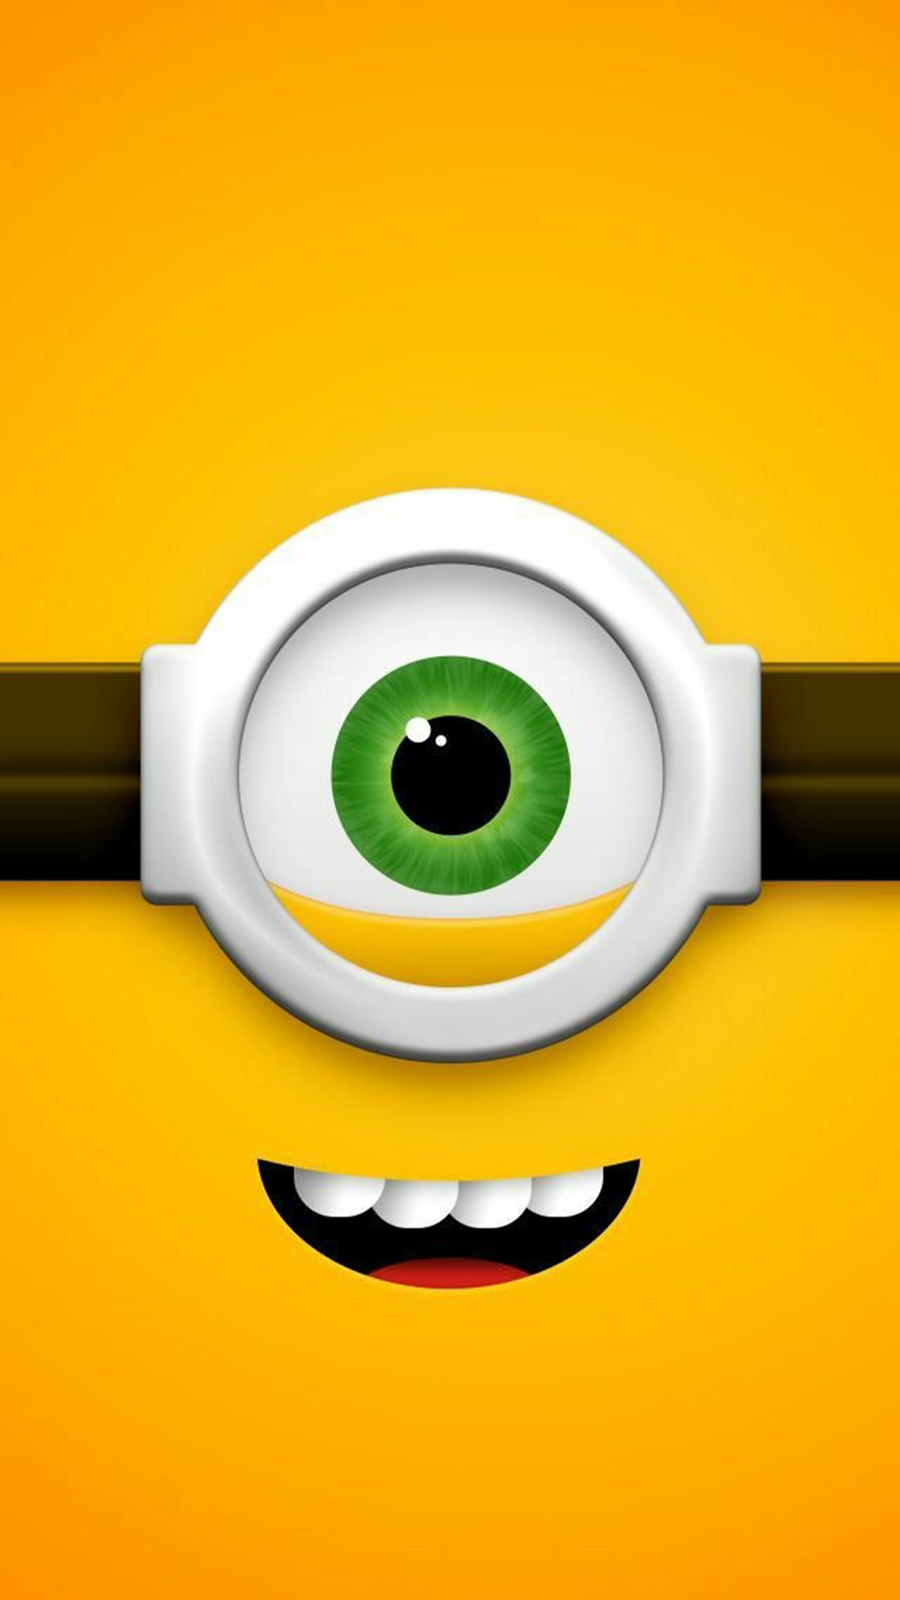 Cartoon Wallpapers for Phone Free Download – Best Wallpapers (8)